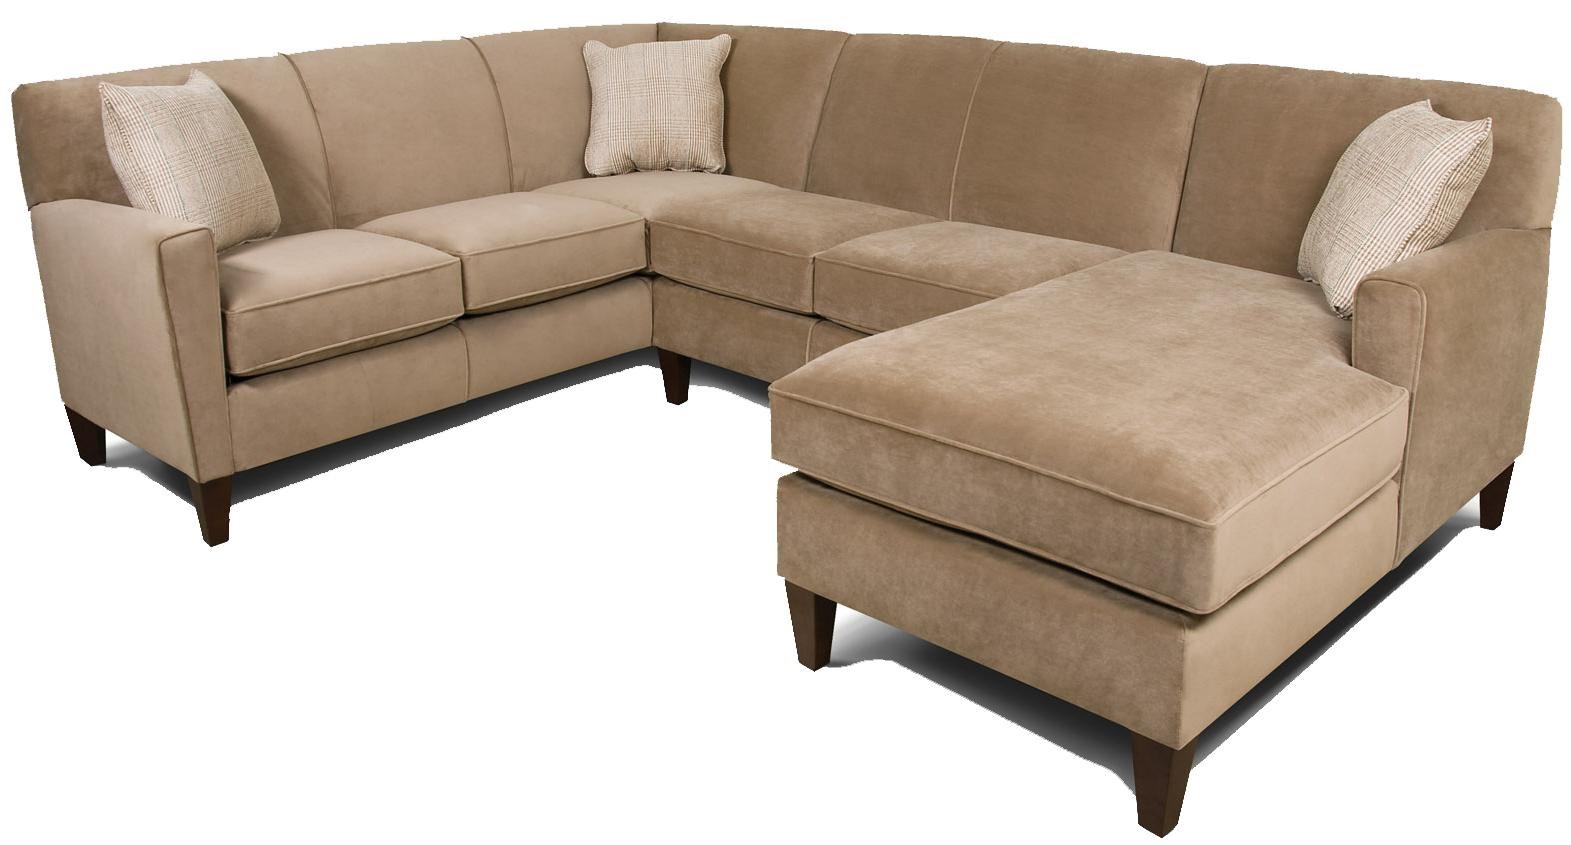 England Collegedale3pc Sectional Sofa